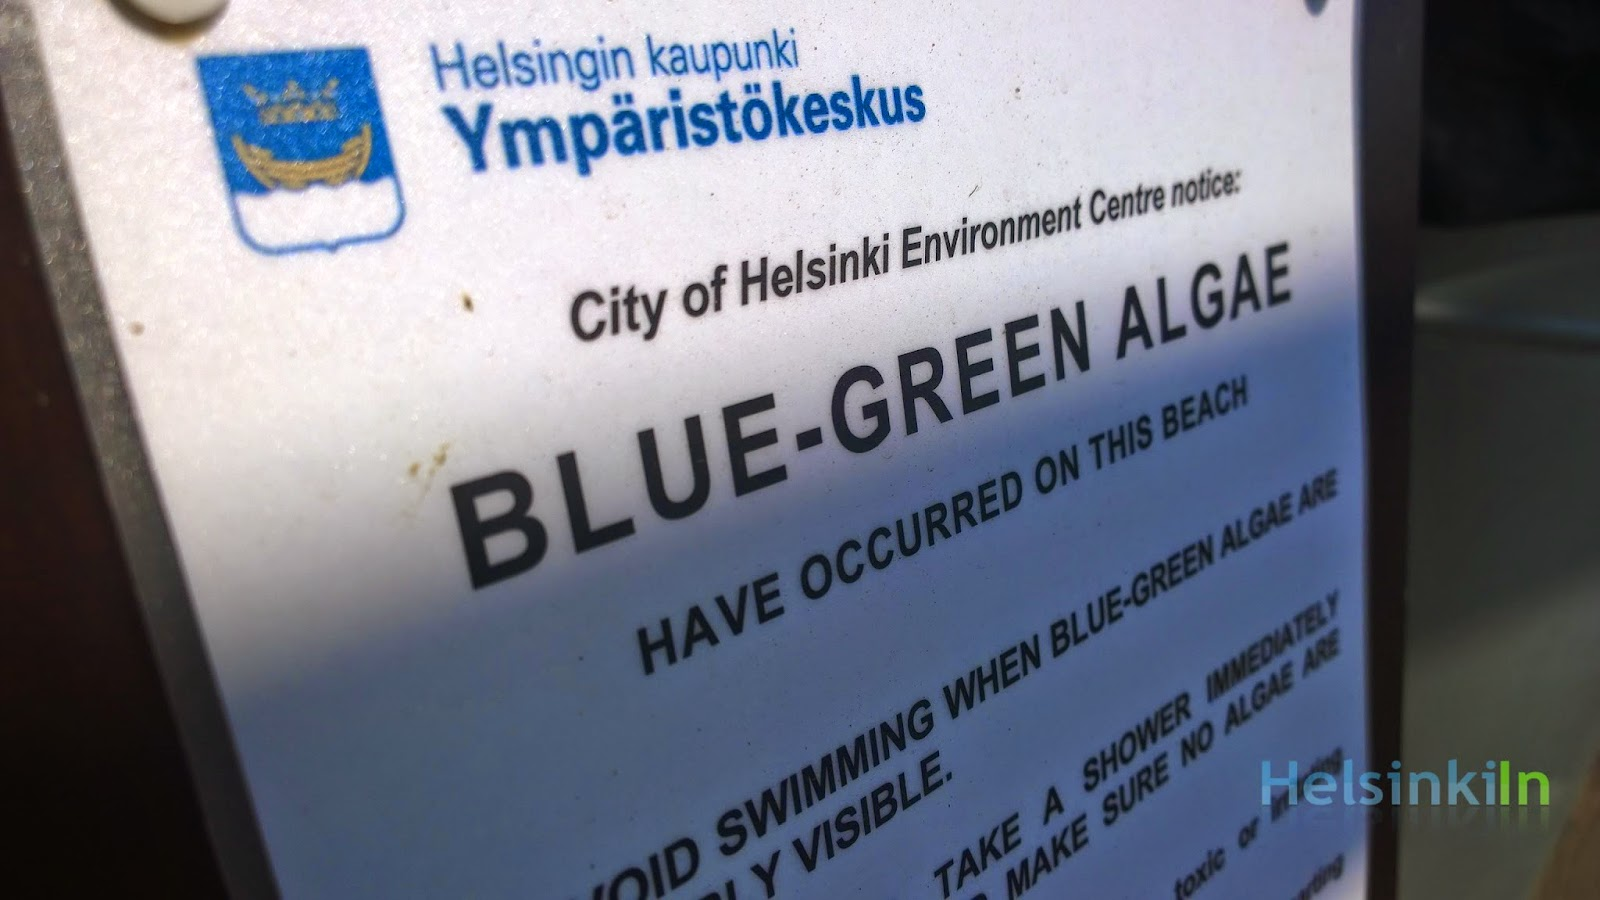 Blue-green algea in Helsinki